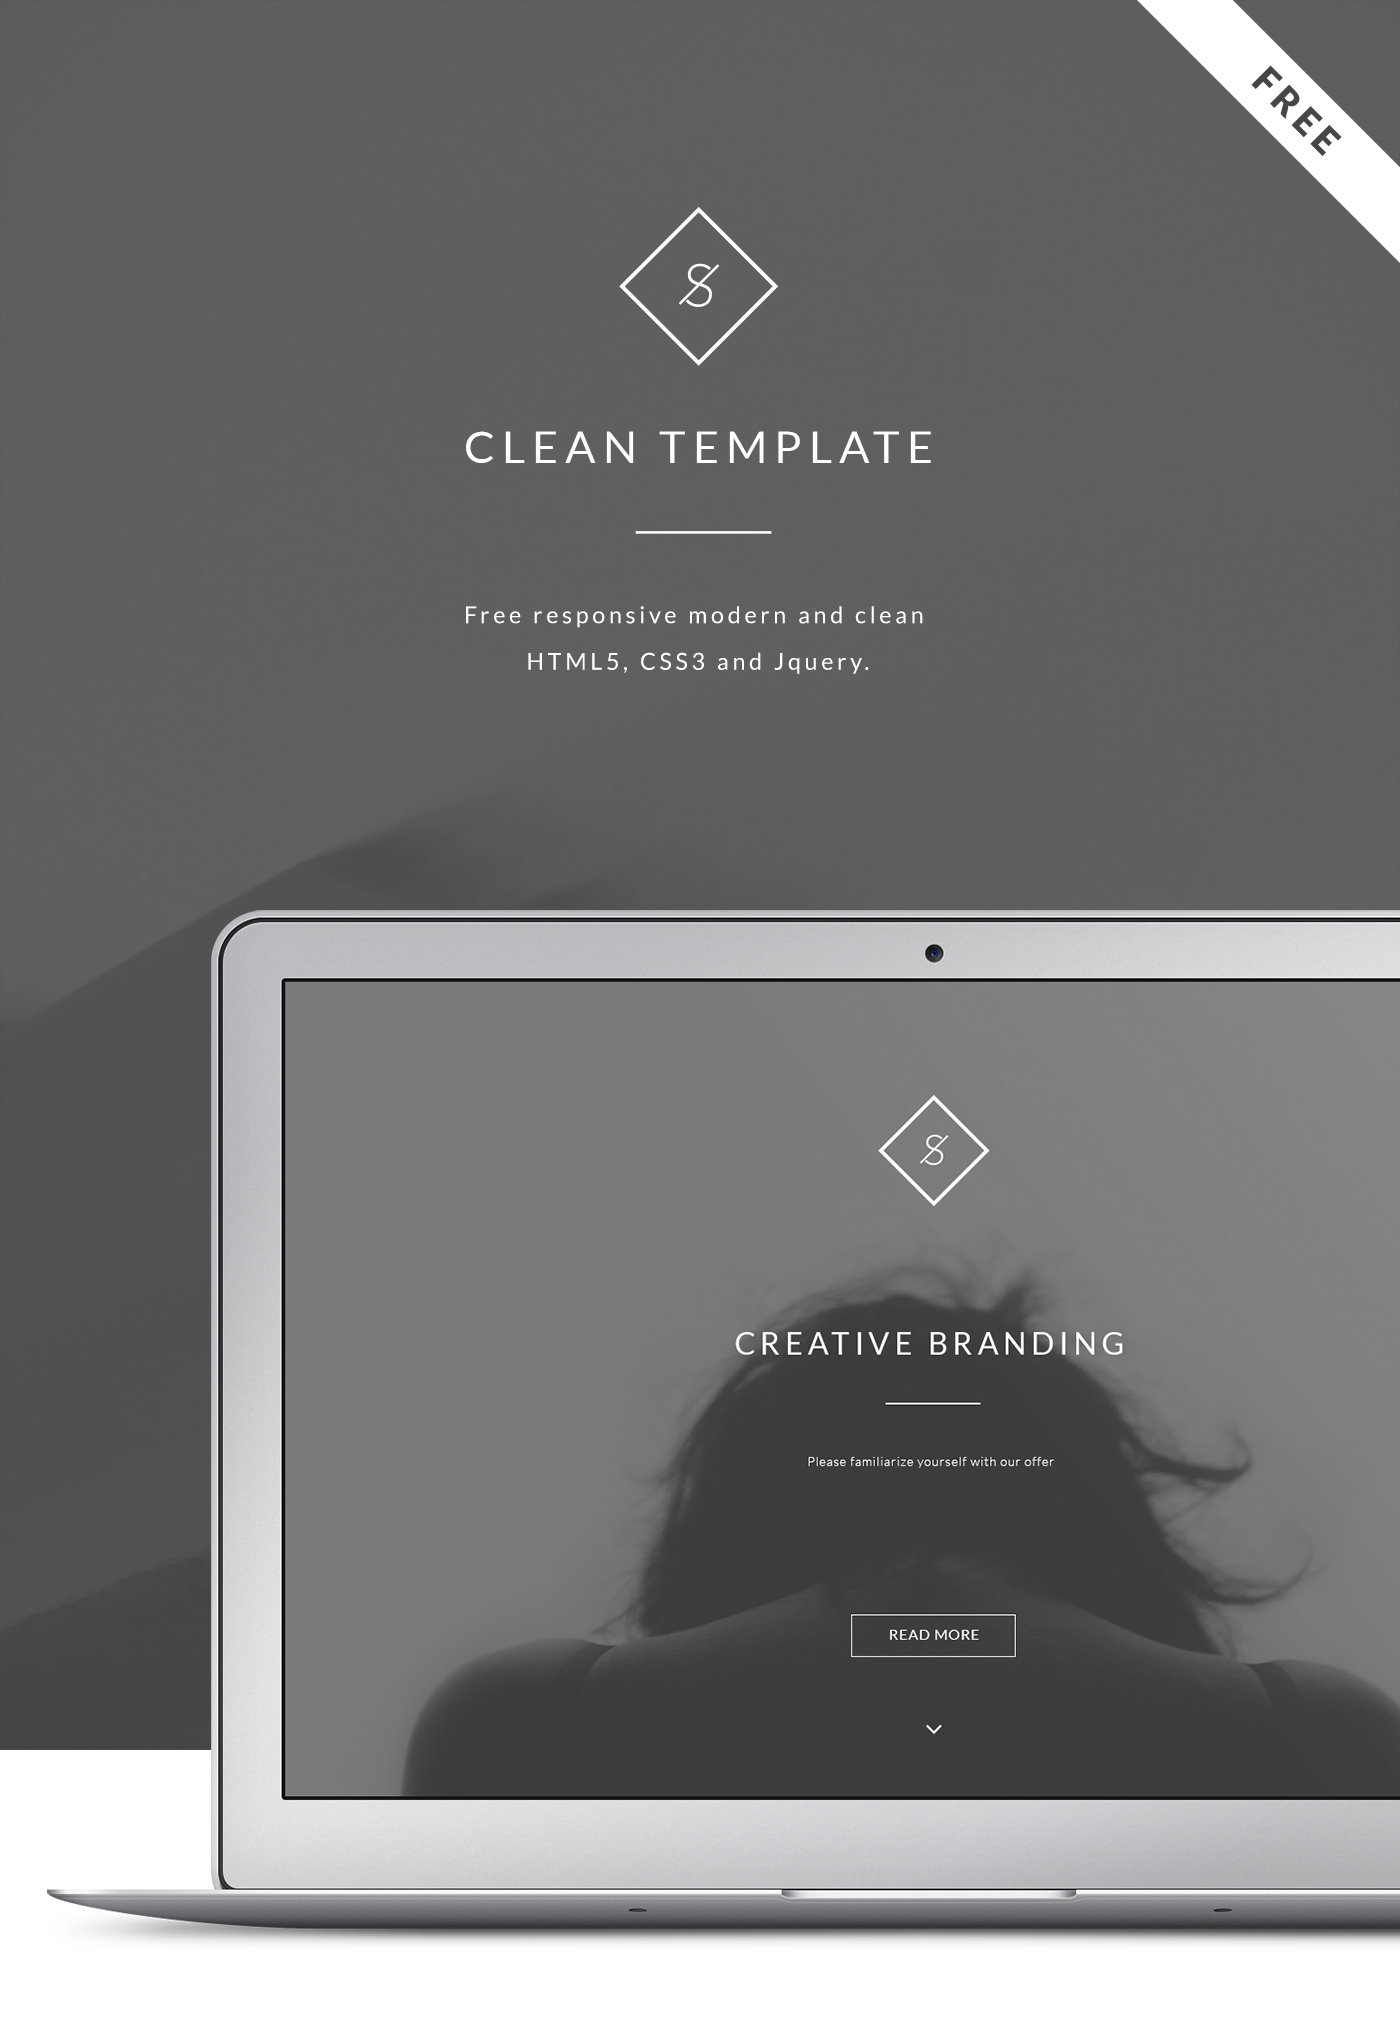 Clean html5 template free - 2018